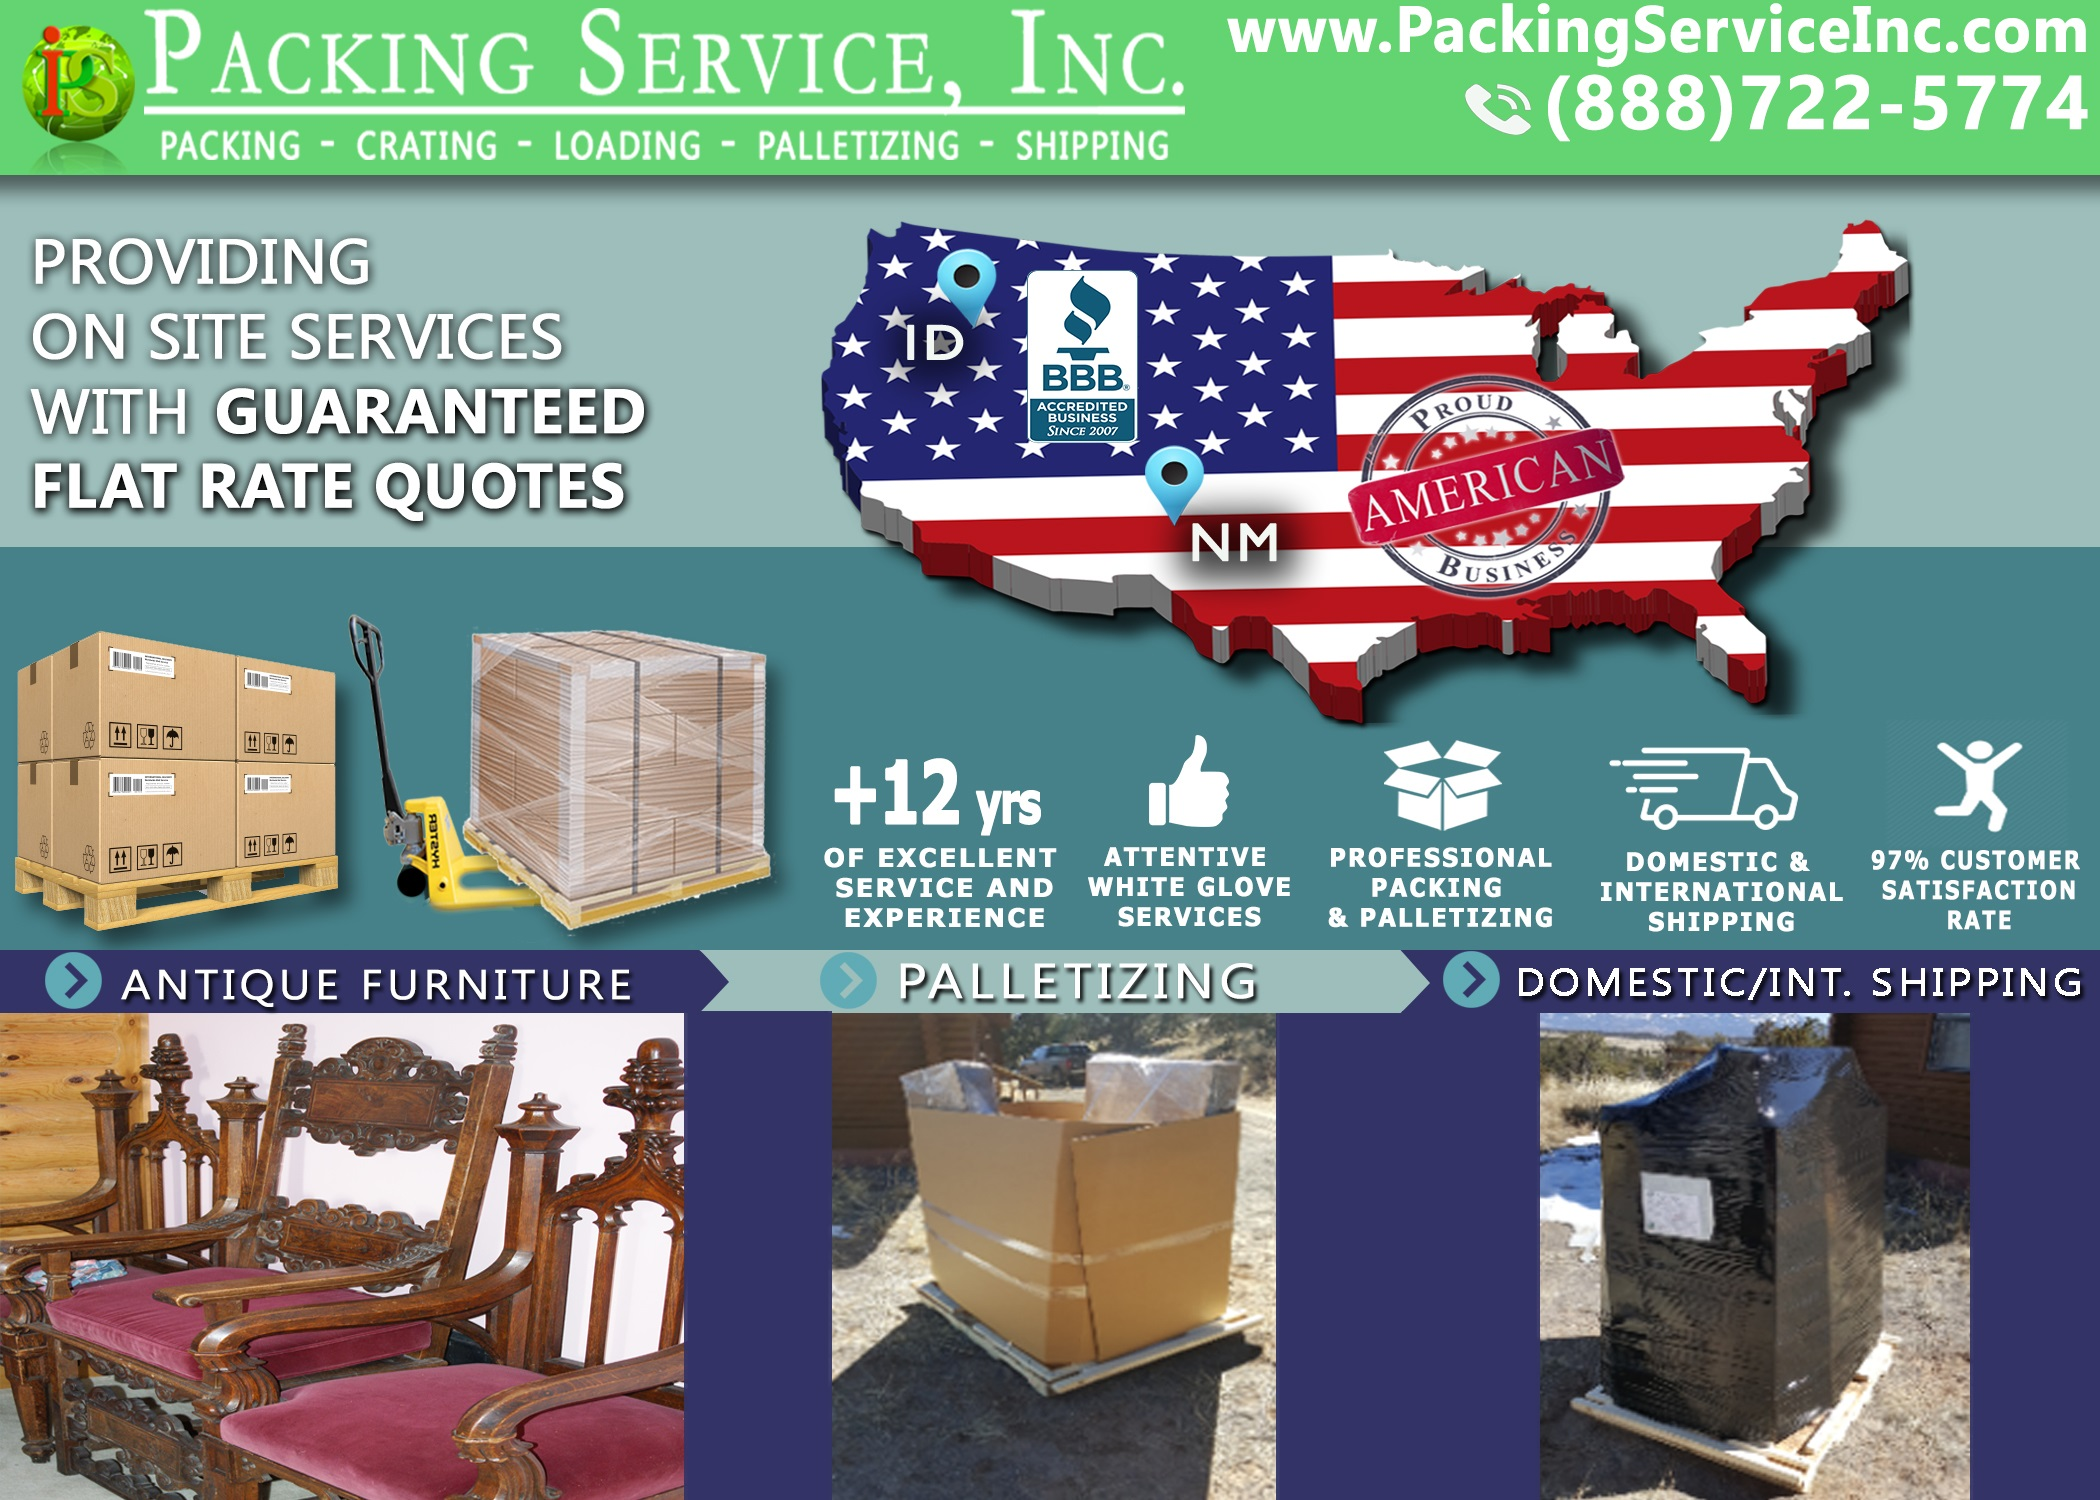 wrapping-2-chairs-palletizing-and-shipping-services-nm-id-with-packing-service-inc-918